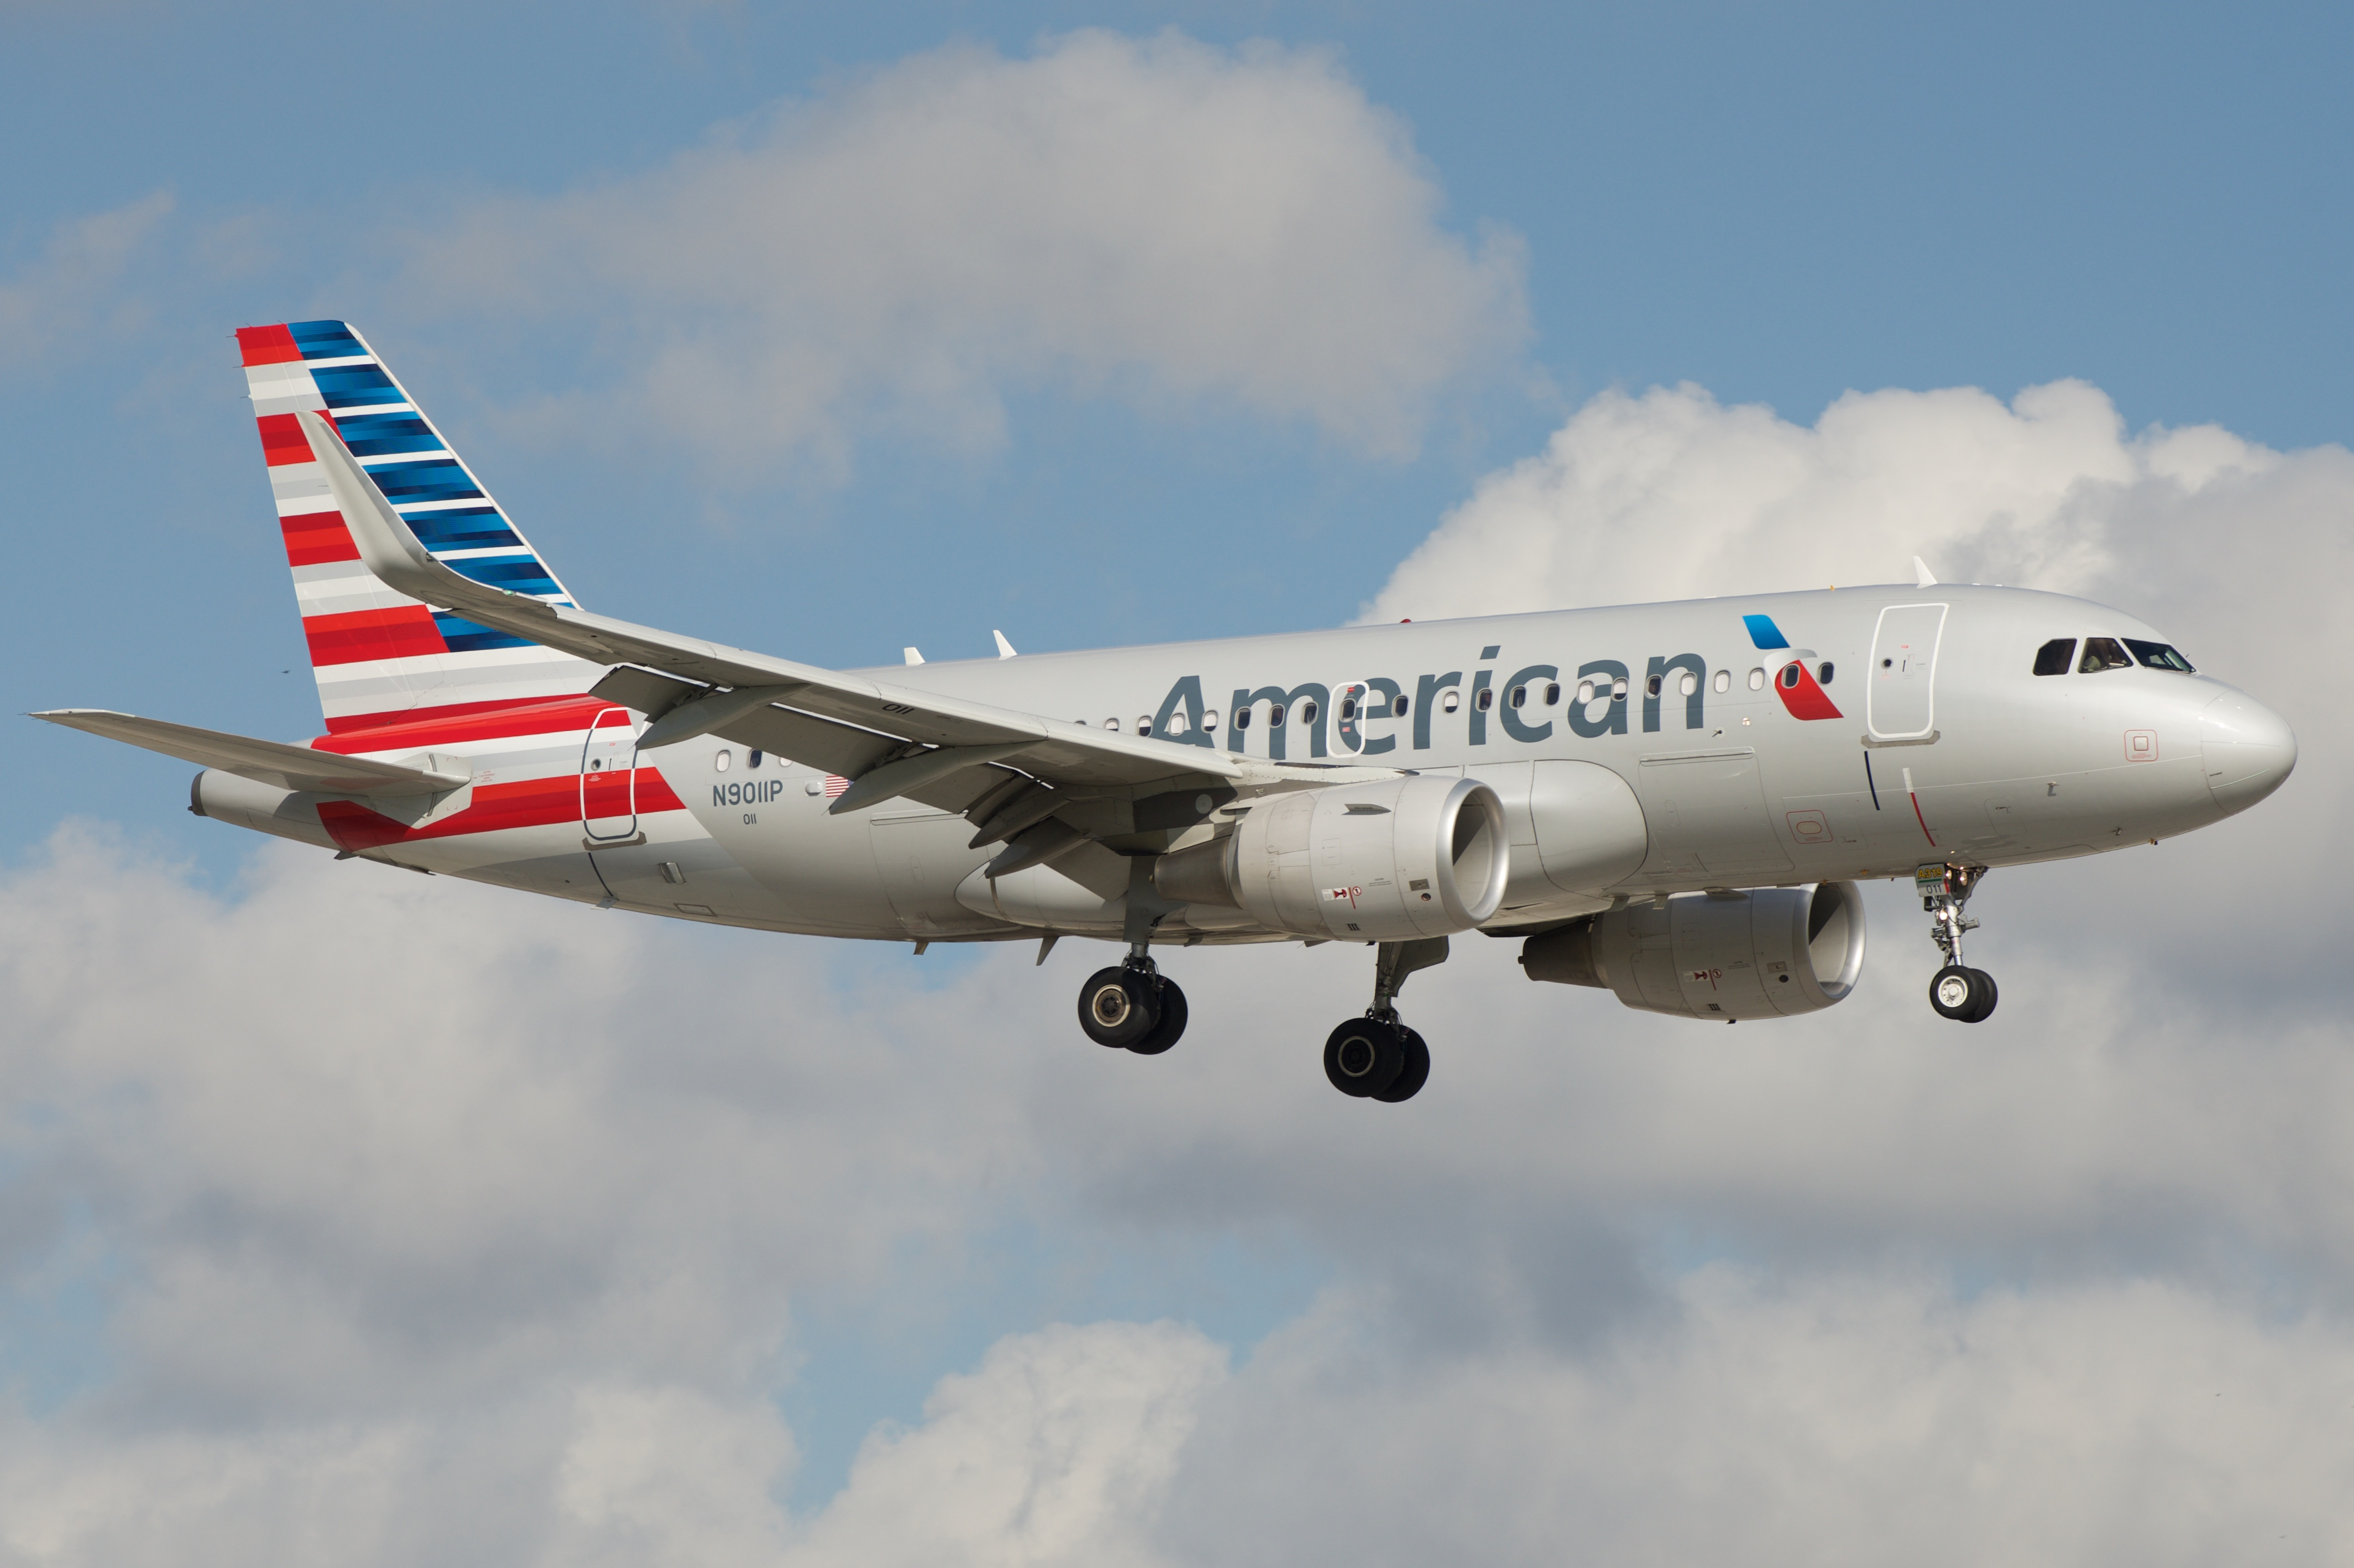 Pack Carry Full Vacation besides Wow Air Biz Seat Review A330 A320 moreover Boeing 777 besides Ministerio Personal Escuela Sabatica as well The Most Efficient Airlines Delta Beats American Airlines United. on spirit airlines